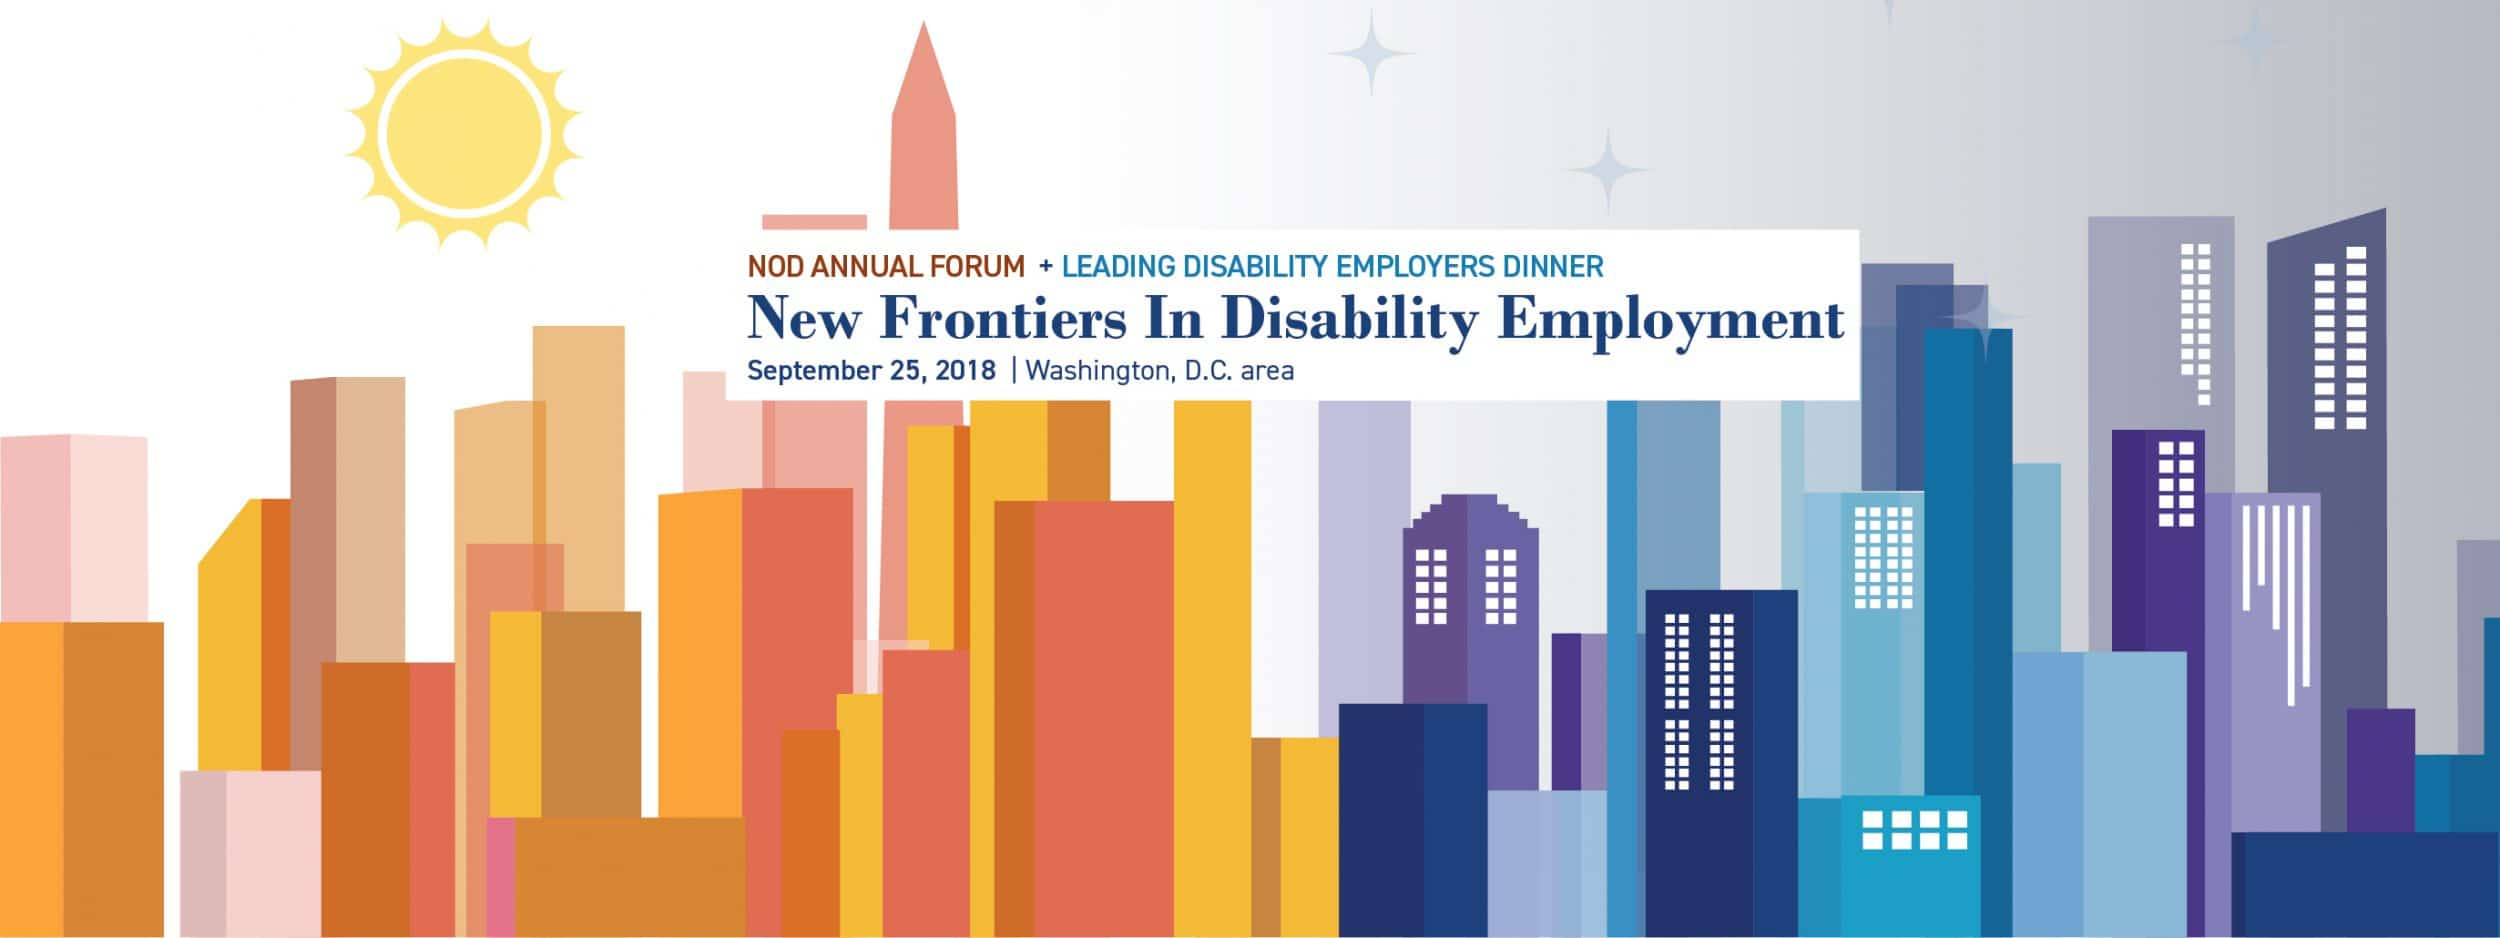 """ANNUAL FORUM + LEADING DISABILITY EMPLOYERS DINNER: """"NEW FRONTIERS IN DISABILITY EMPLOYMENT"""" September 25, 2018"""